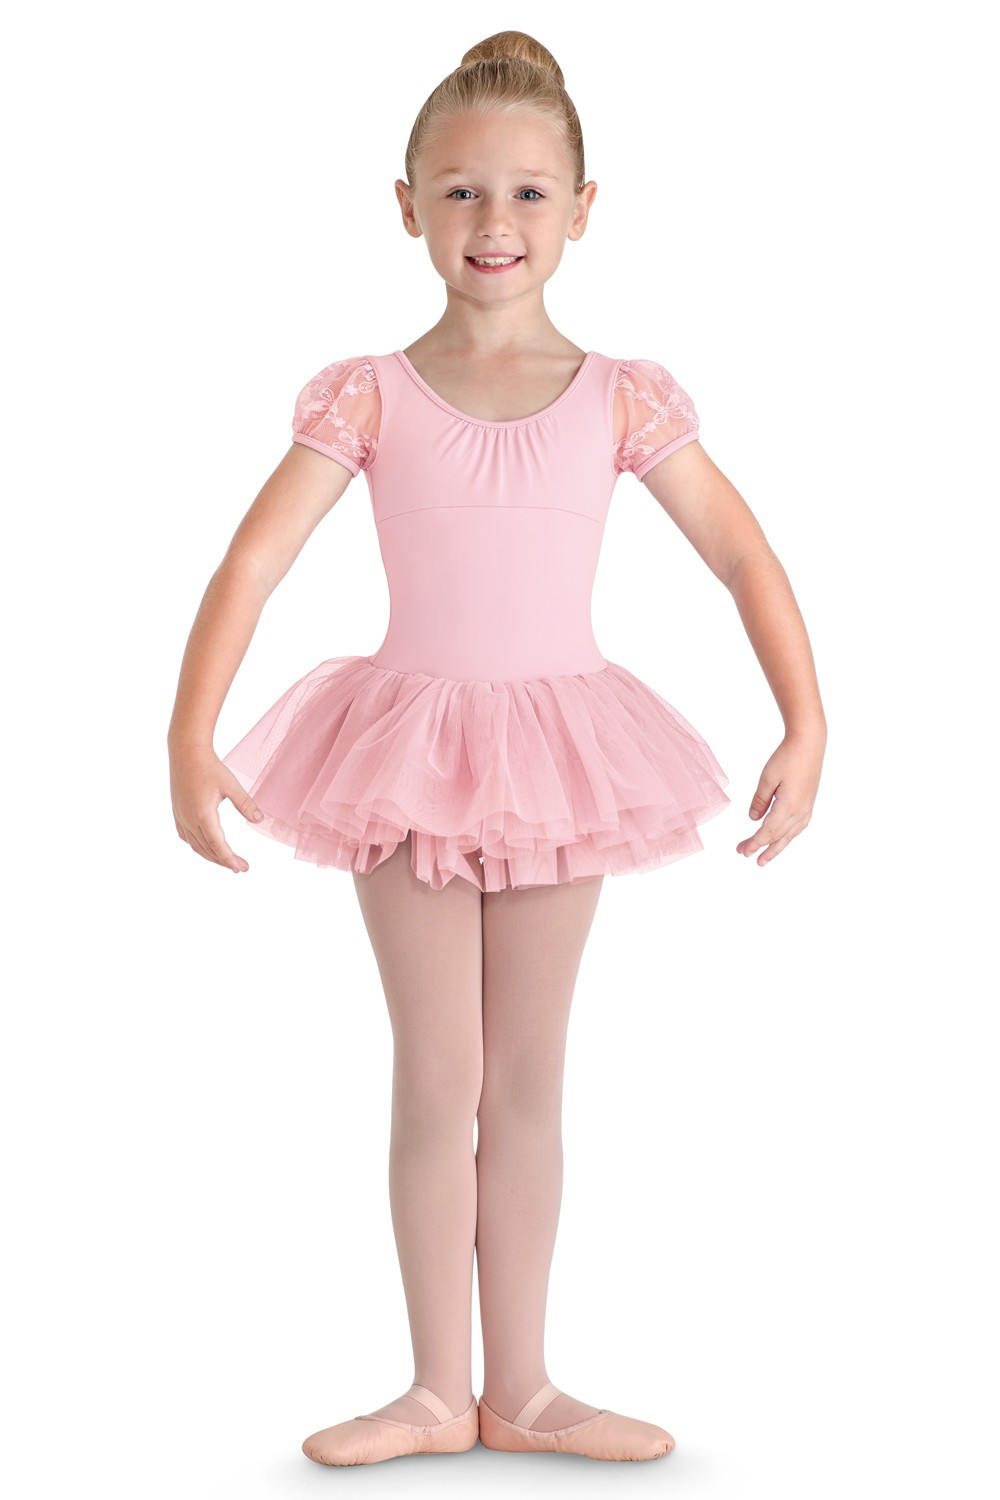 Foxglove Children's Dance Leotards